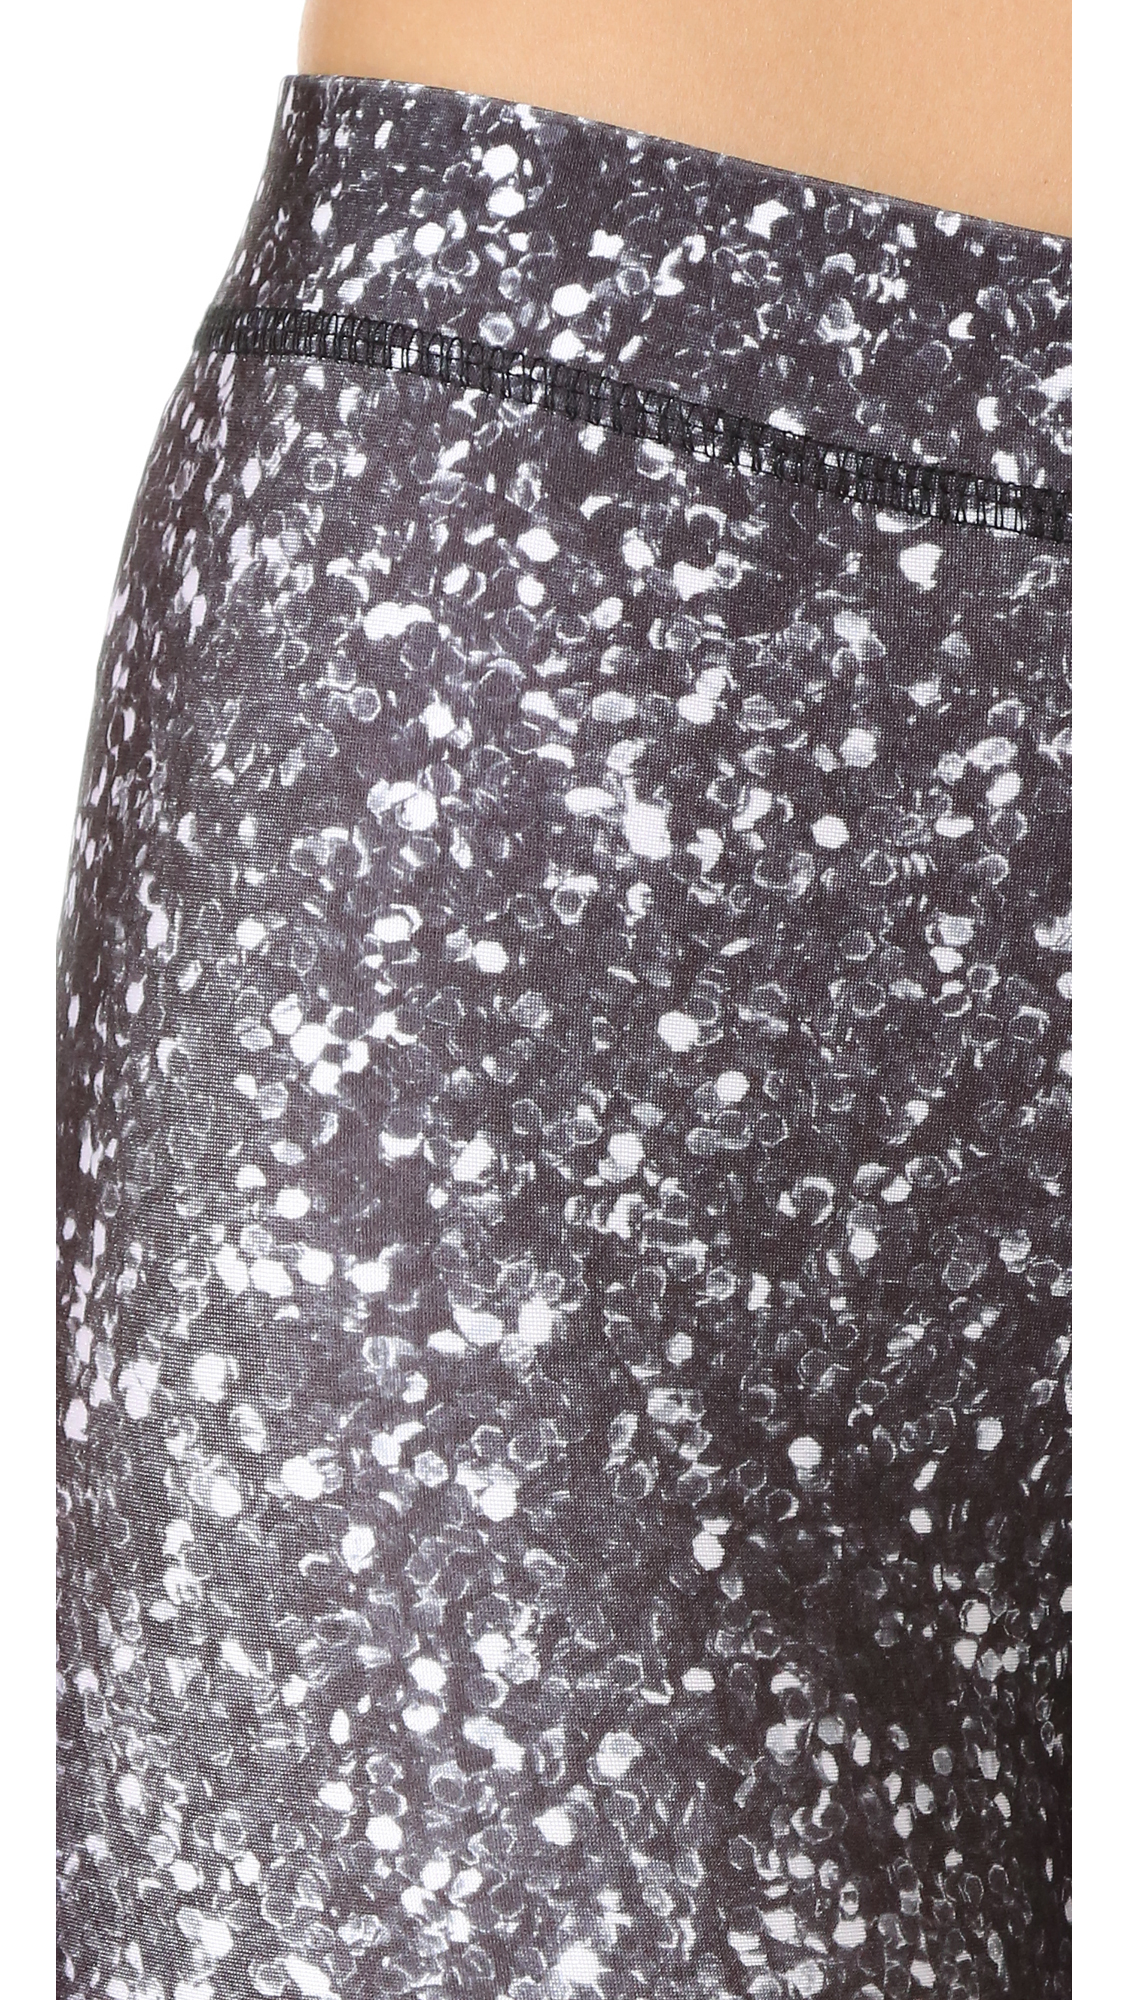 Black & White Glitter Performance Leggings